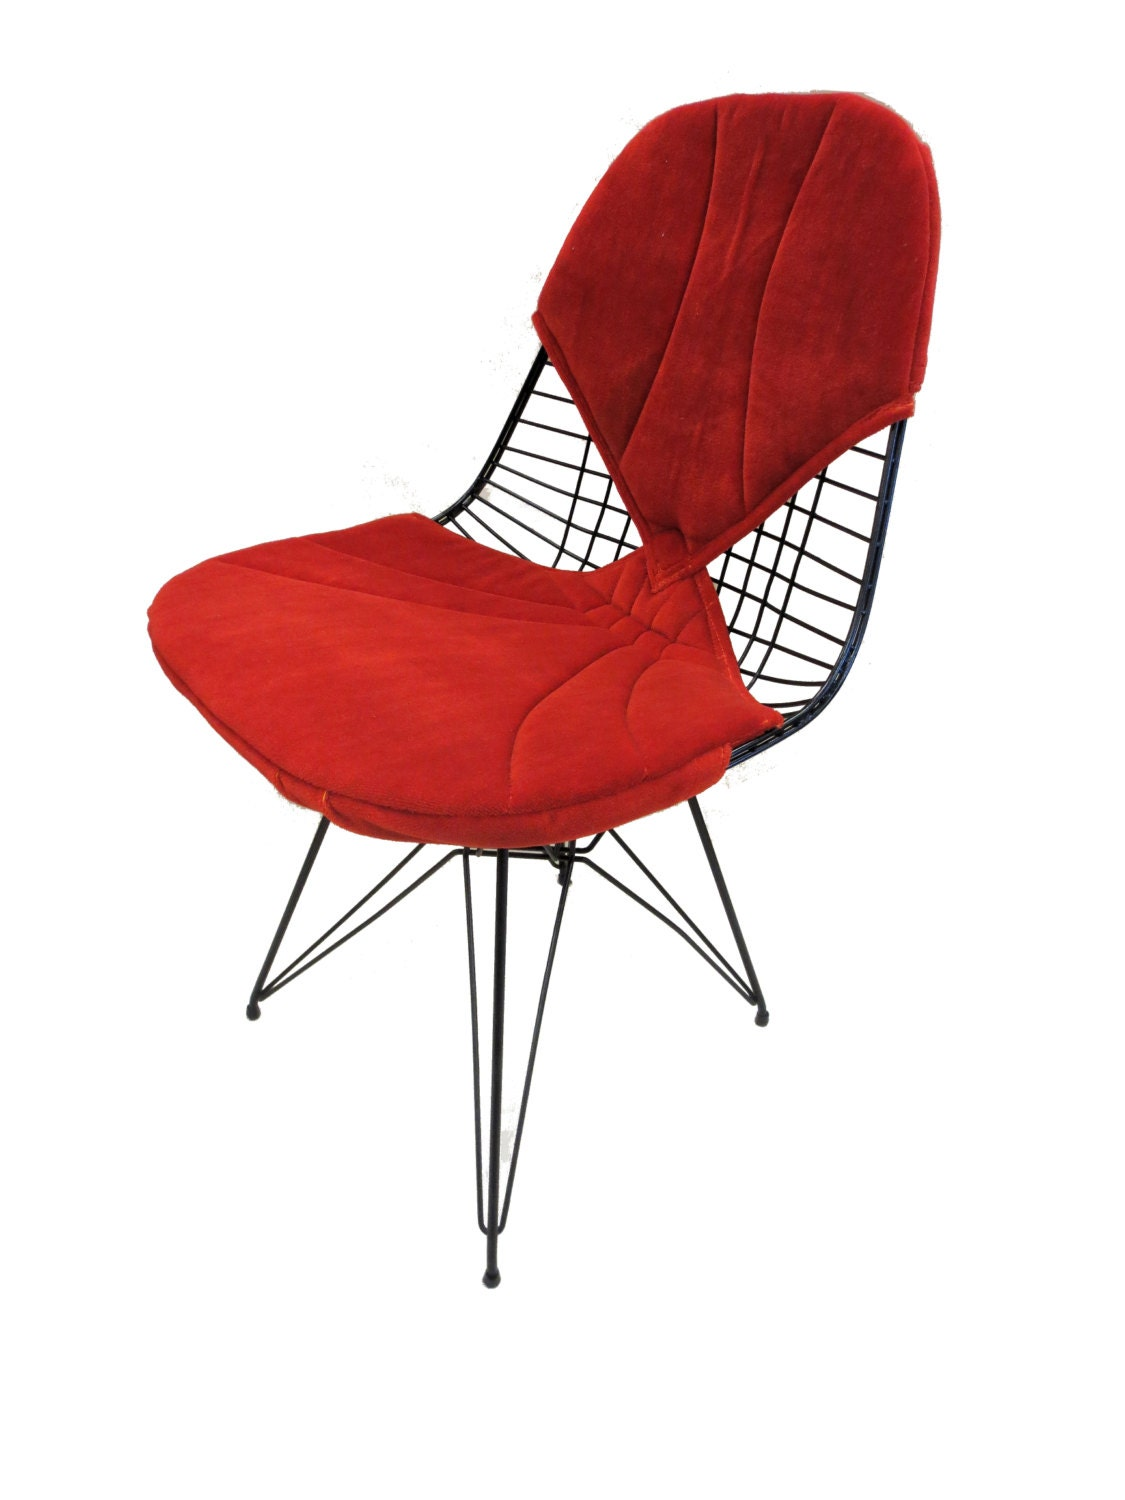 Eames dkr wire chair 1951 herman miller iconic by russellsretro - Herman miller bucket chair ...